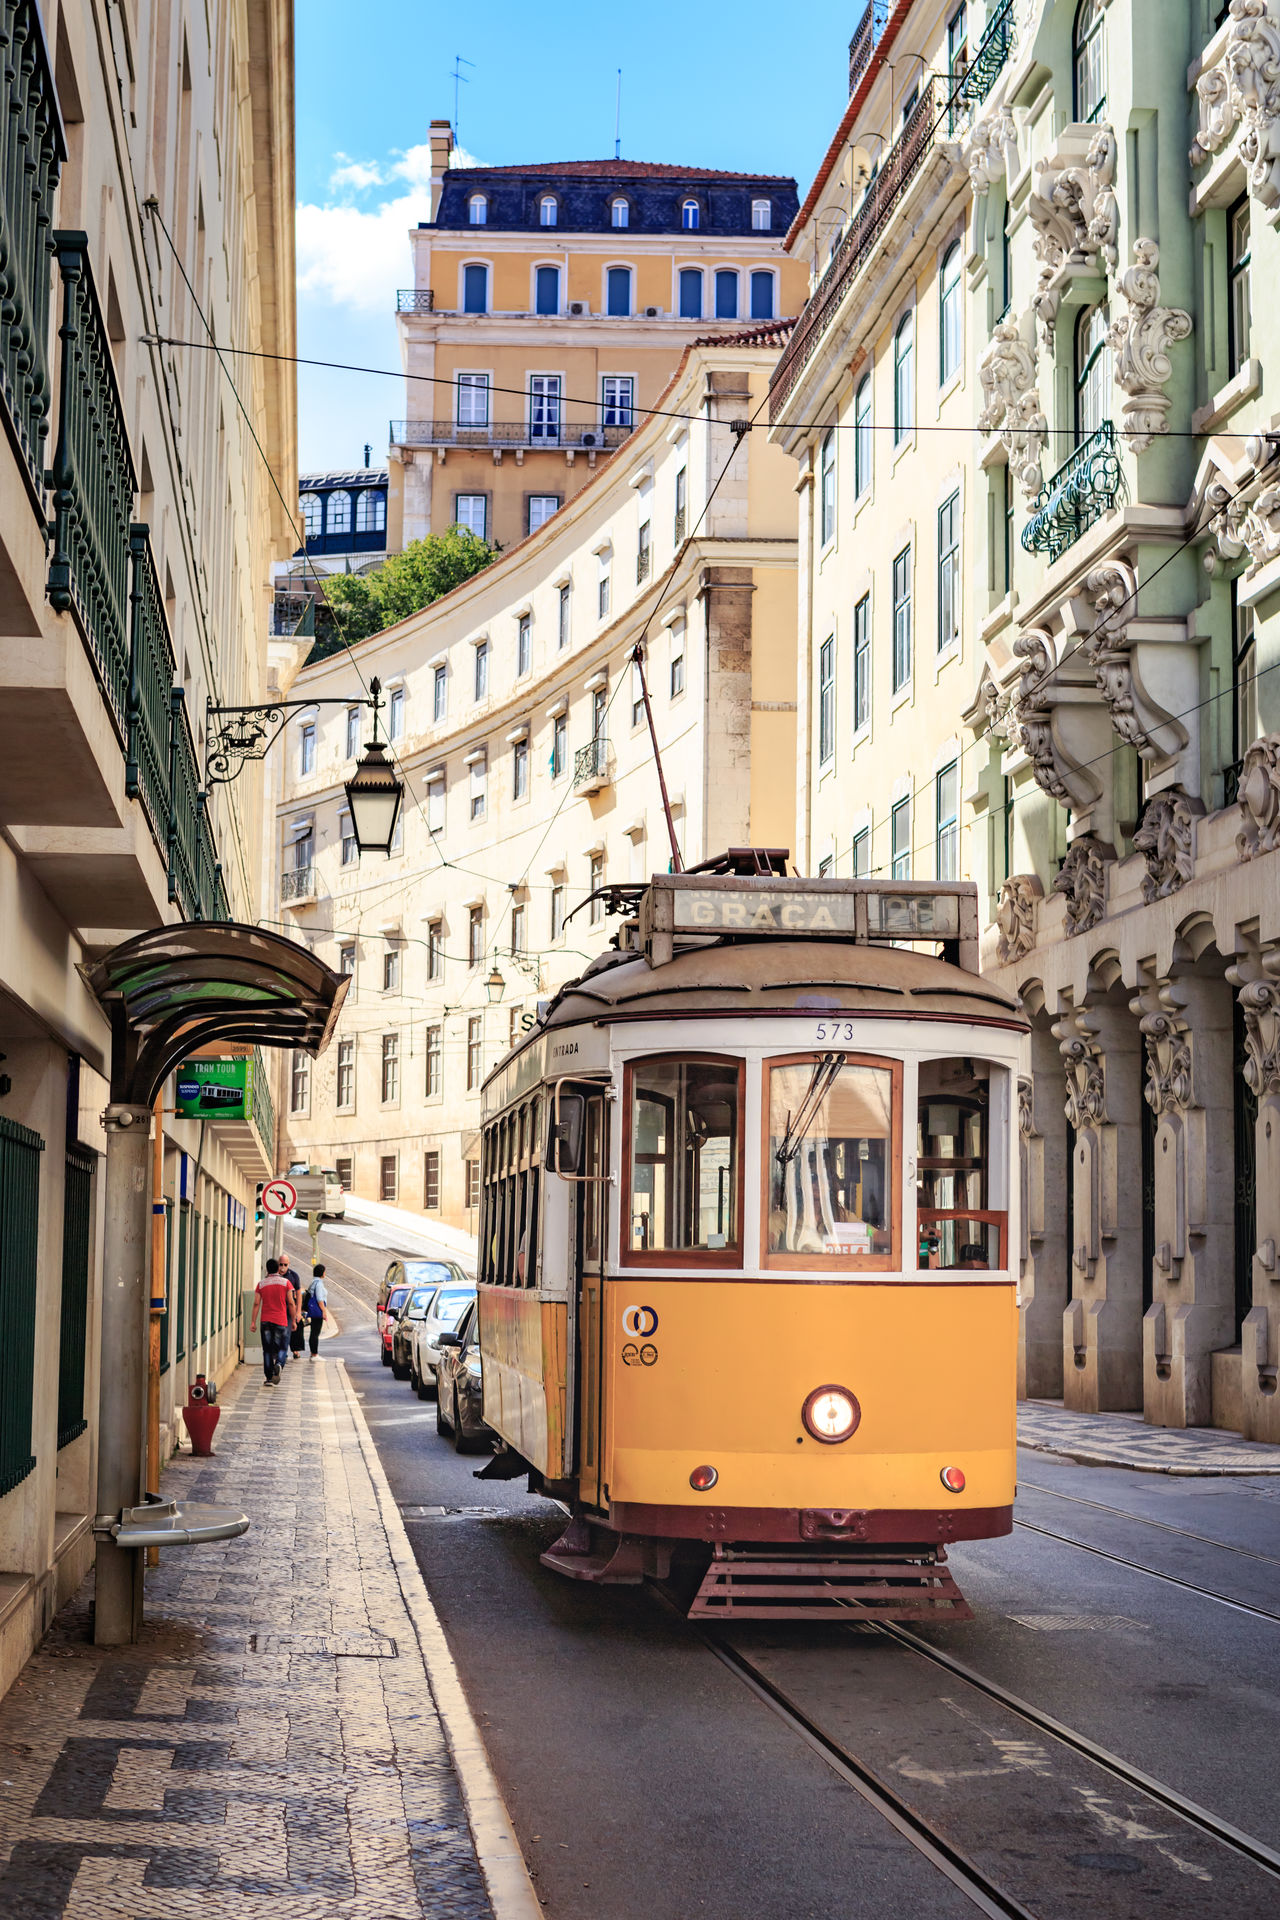 LISBON, PORTUGAL - CIRCA OCTOBER, 2016: Streets of Lisbon town, Portugal. Architecture Architecture, Building, Castle, Editorial, Europe, Exterior, Famous, Formal, History, House, Lisbon, Old, Palace, Park, Portugal, Public, Residential, Sightseeing, Street, Touristic, Tram, Travel Building Exterior Built Structure City Day Incidental People Mode Of Transport Outdoors People Real People Sky Street Transportation